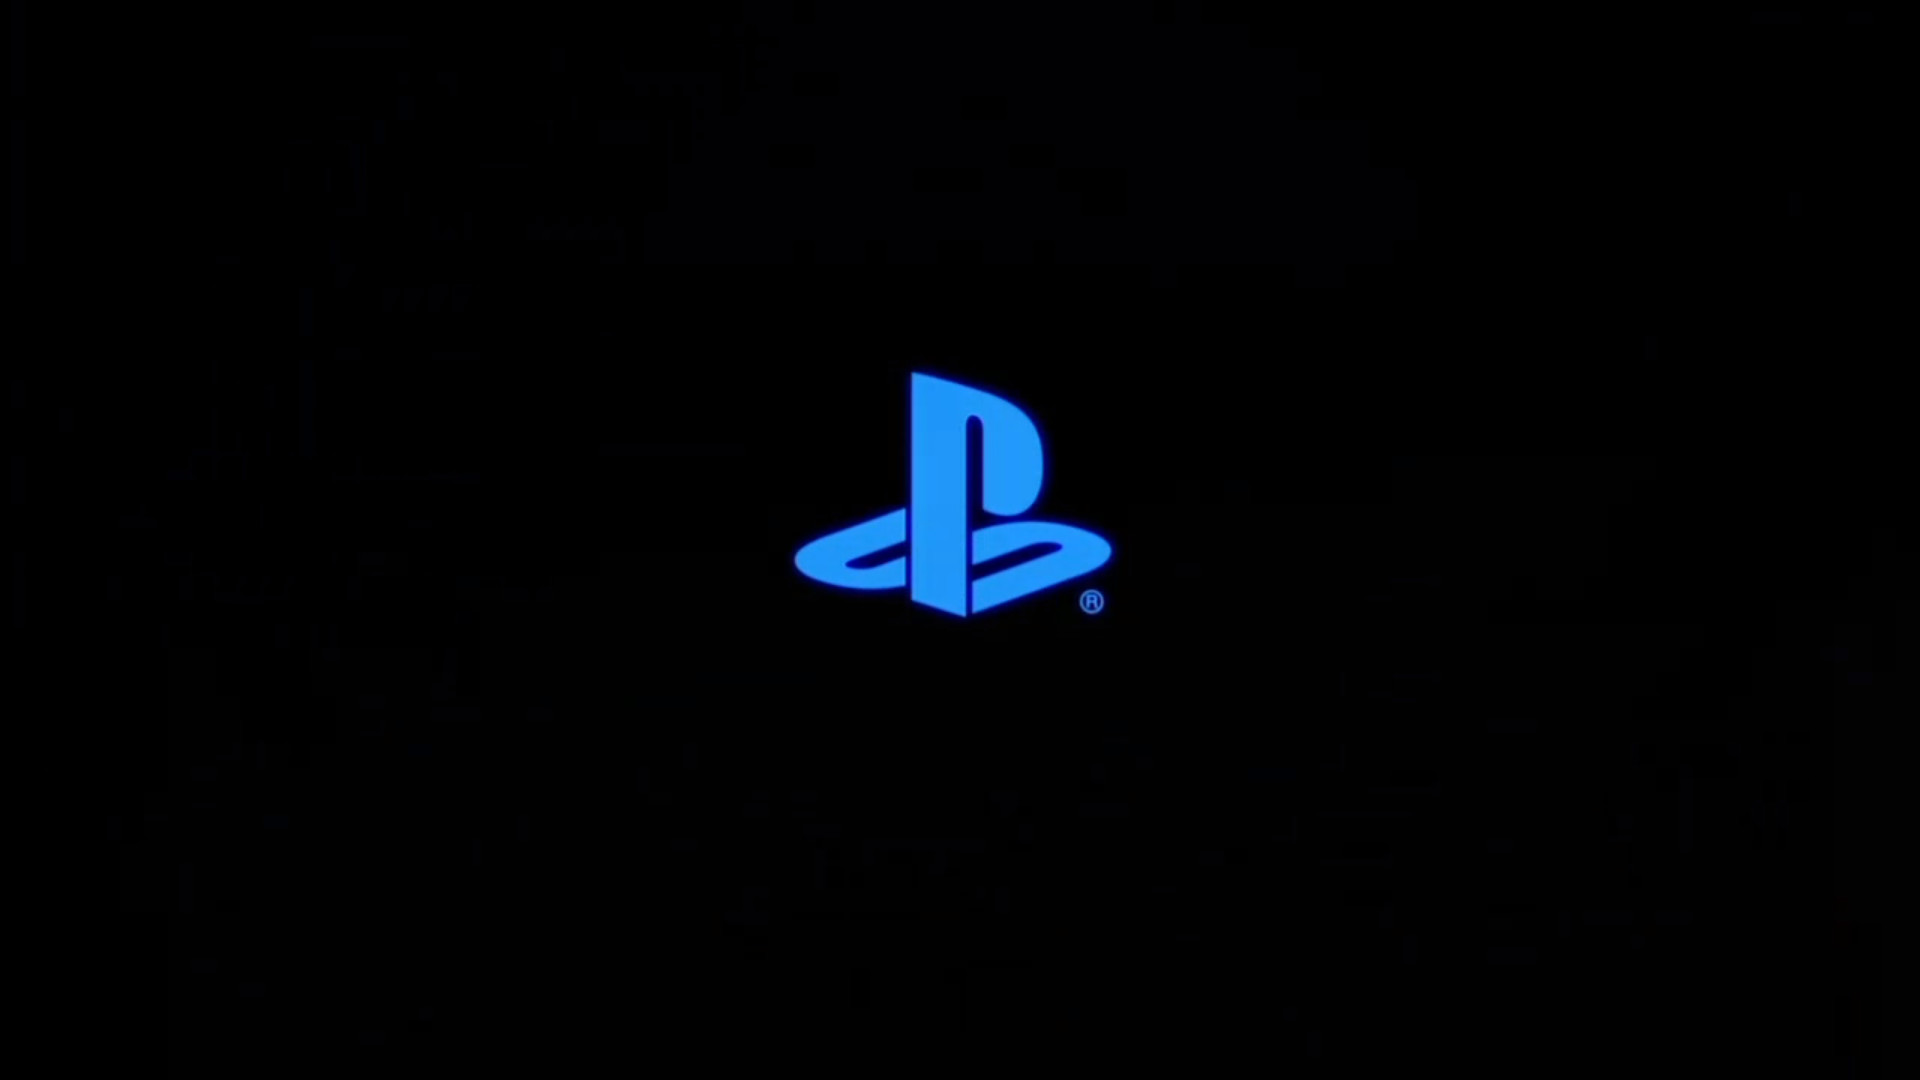 1920x1080 Download Playstation Live Wallpaper Android Gallery Source A PS3 Wallpapers 28